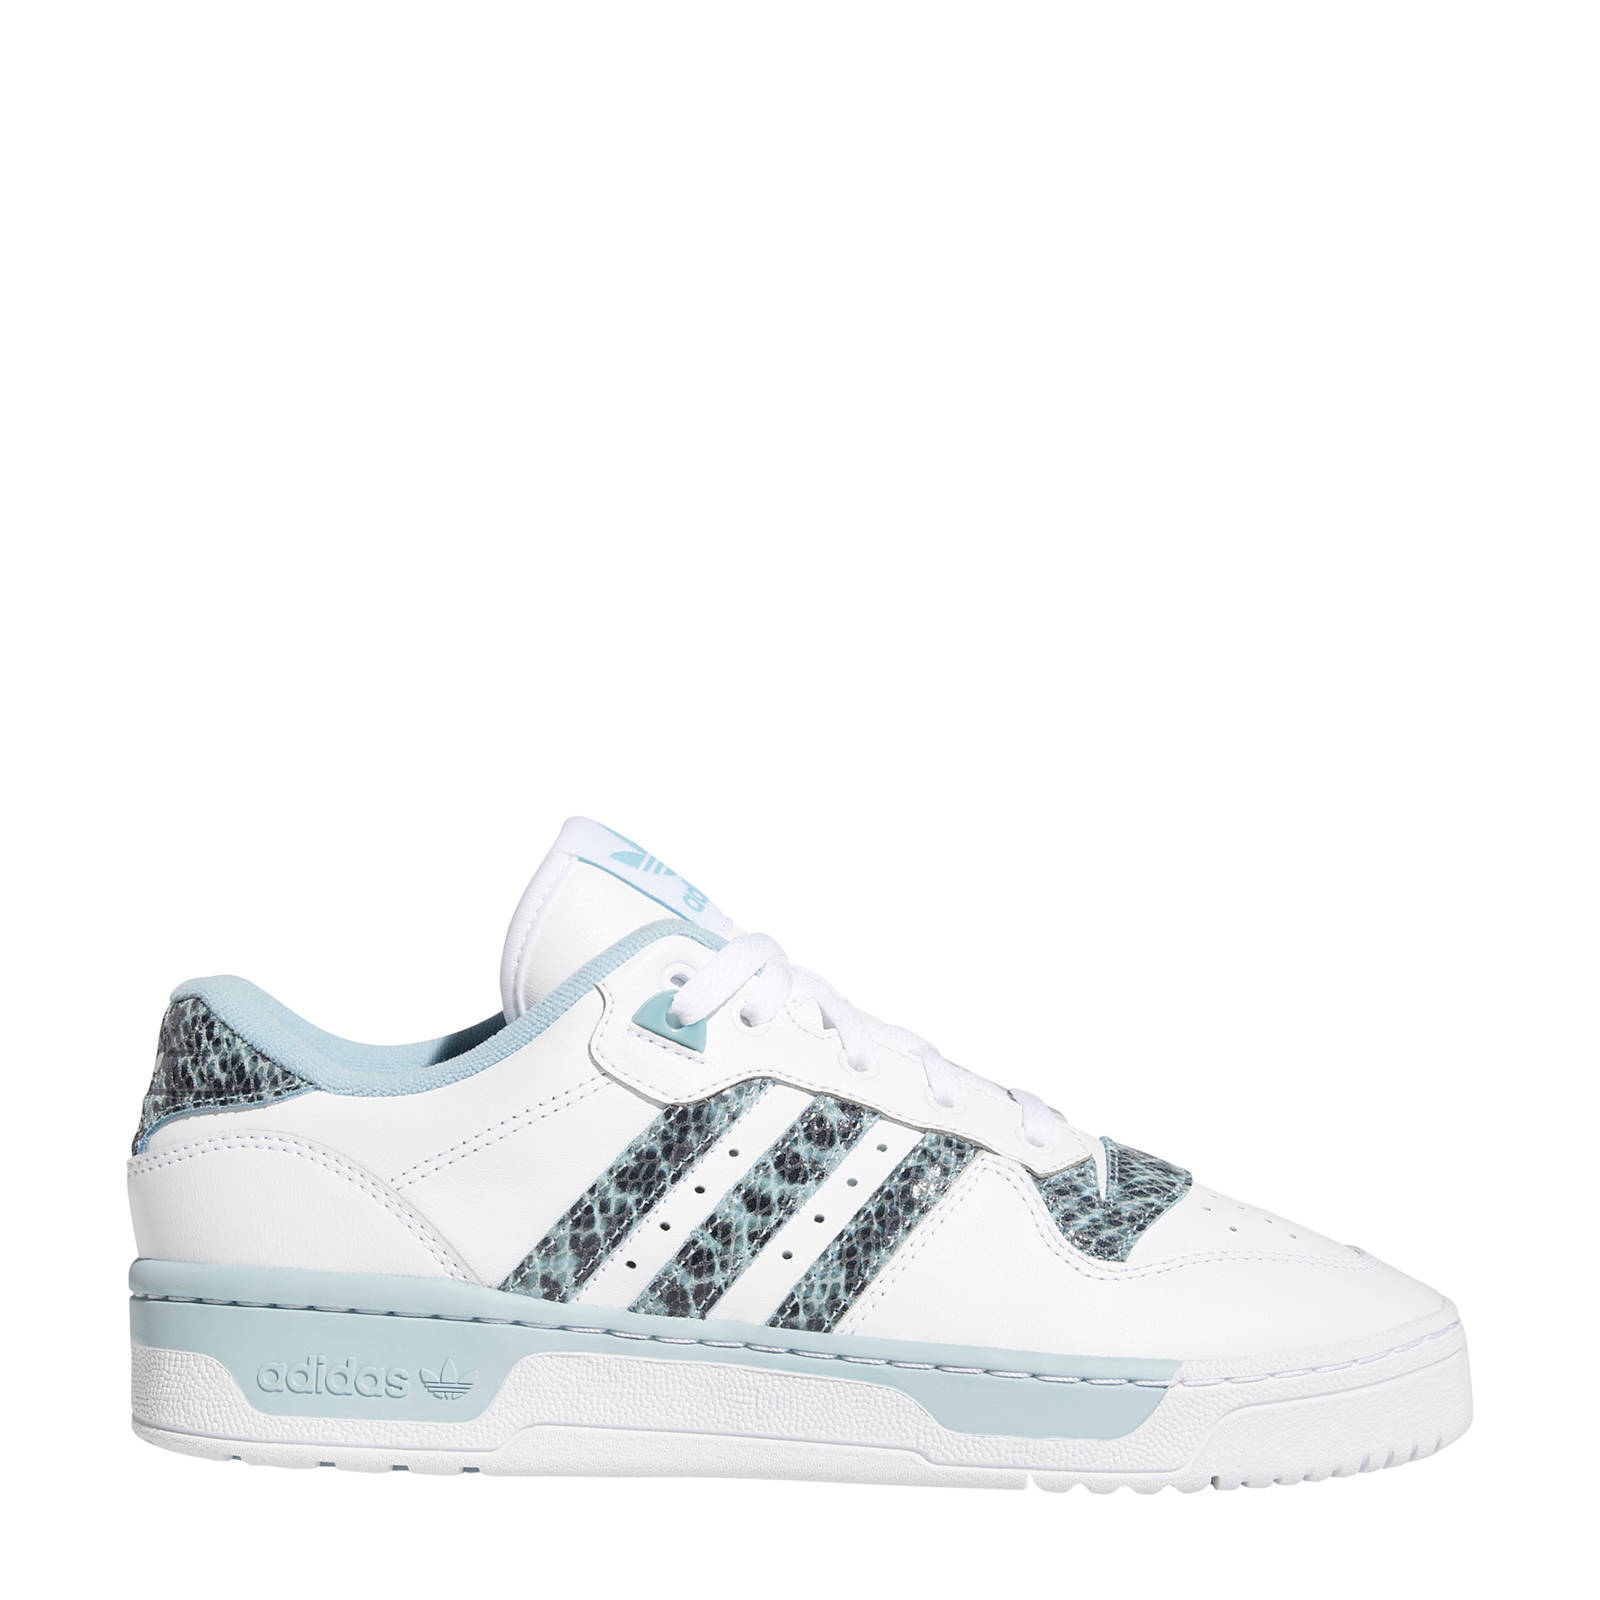 adidas Originals Rivalry Low sneakers wit/grijs | wehkamp